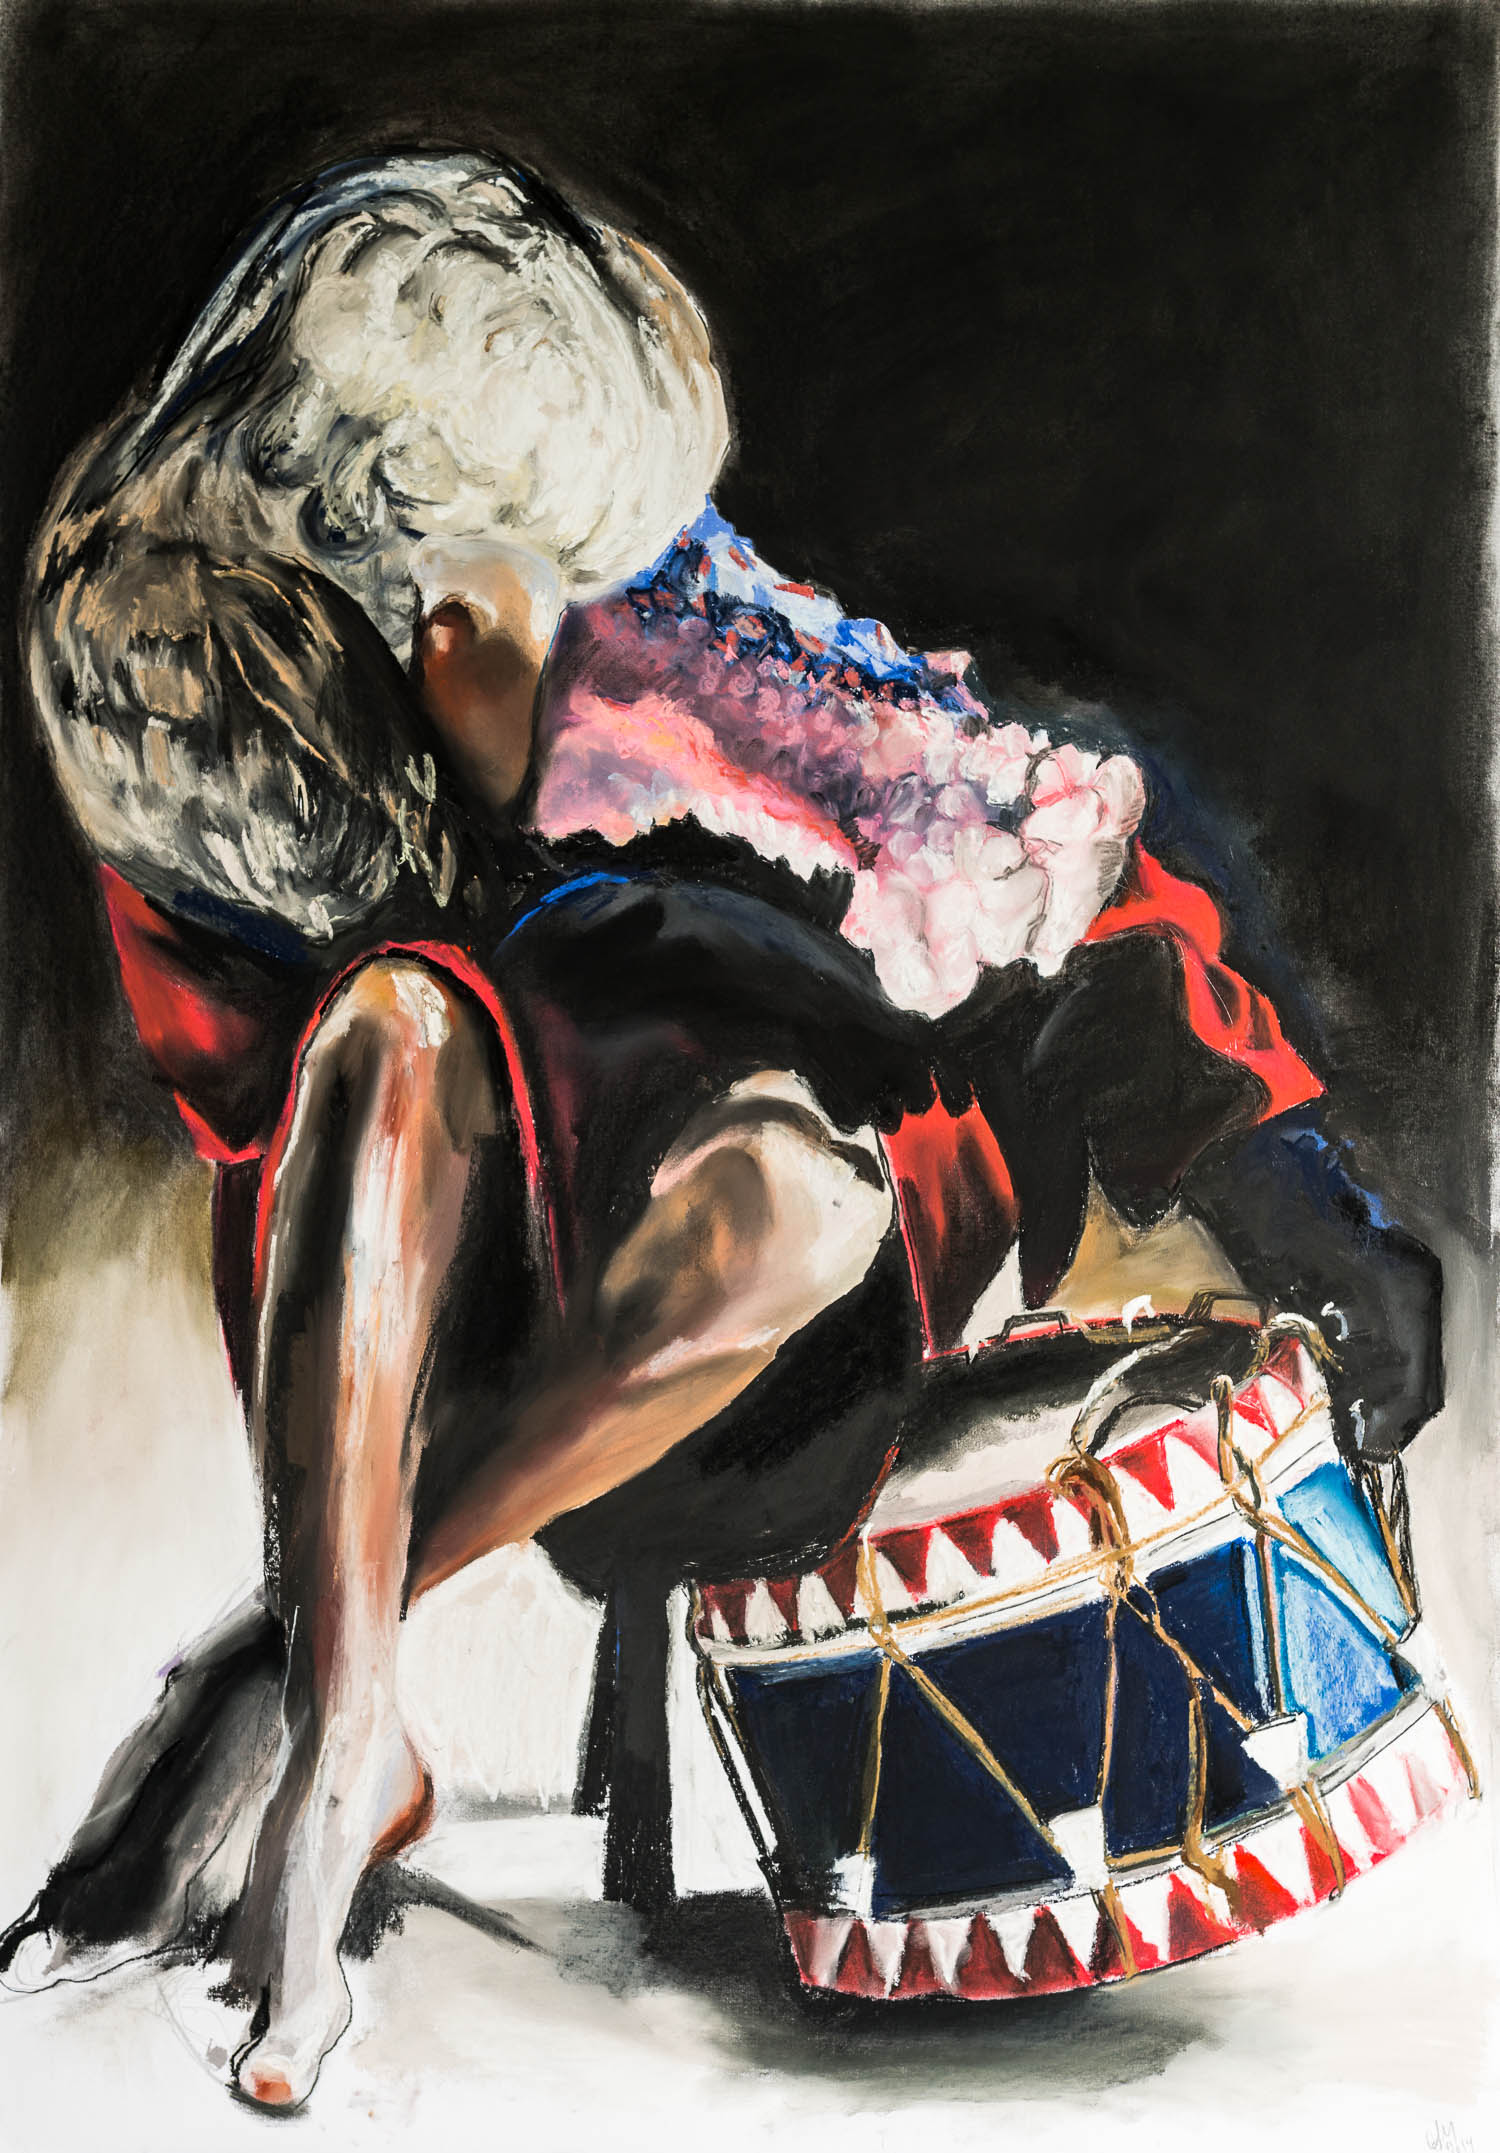 The Deflated Drummer, 2014